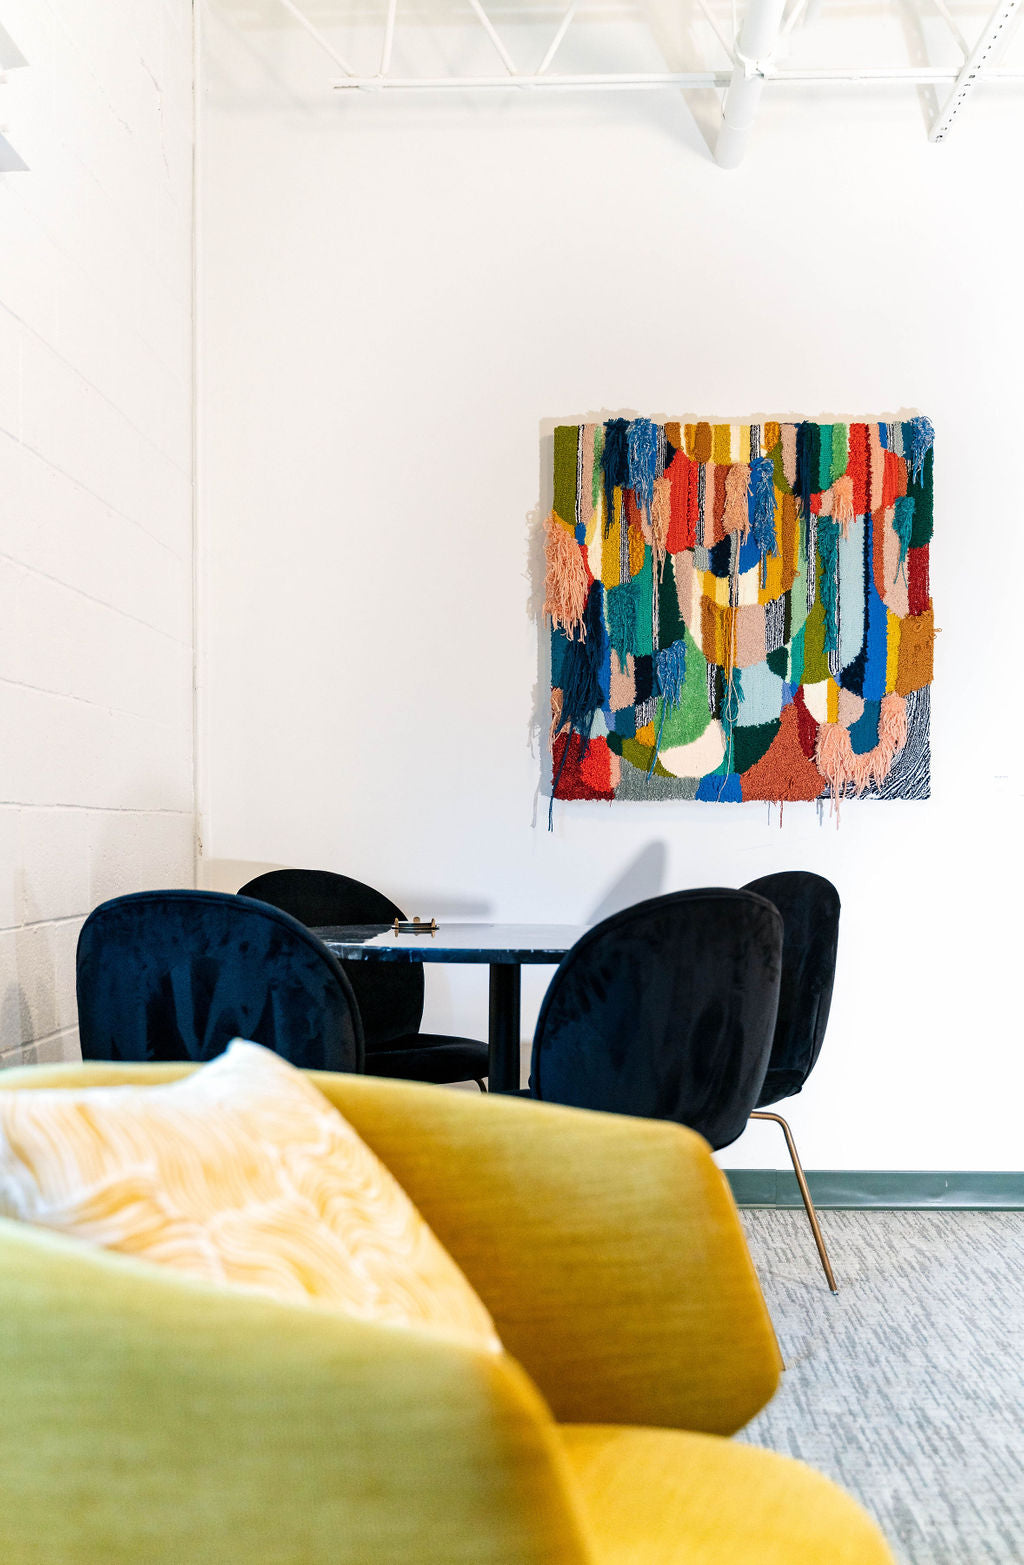 Trish Andersen Seeing Clearly tufted fiber art in commercial space